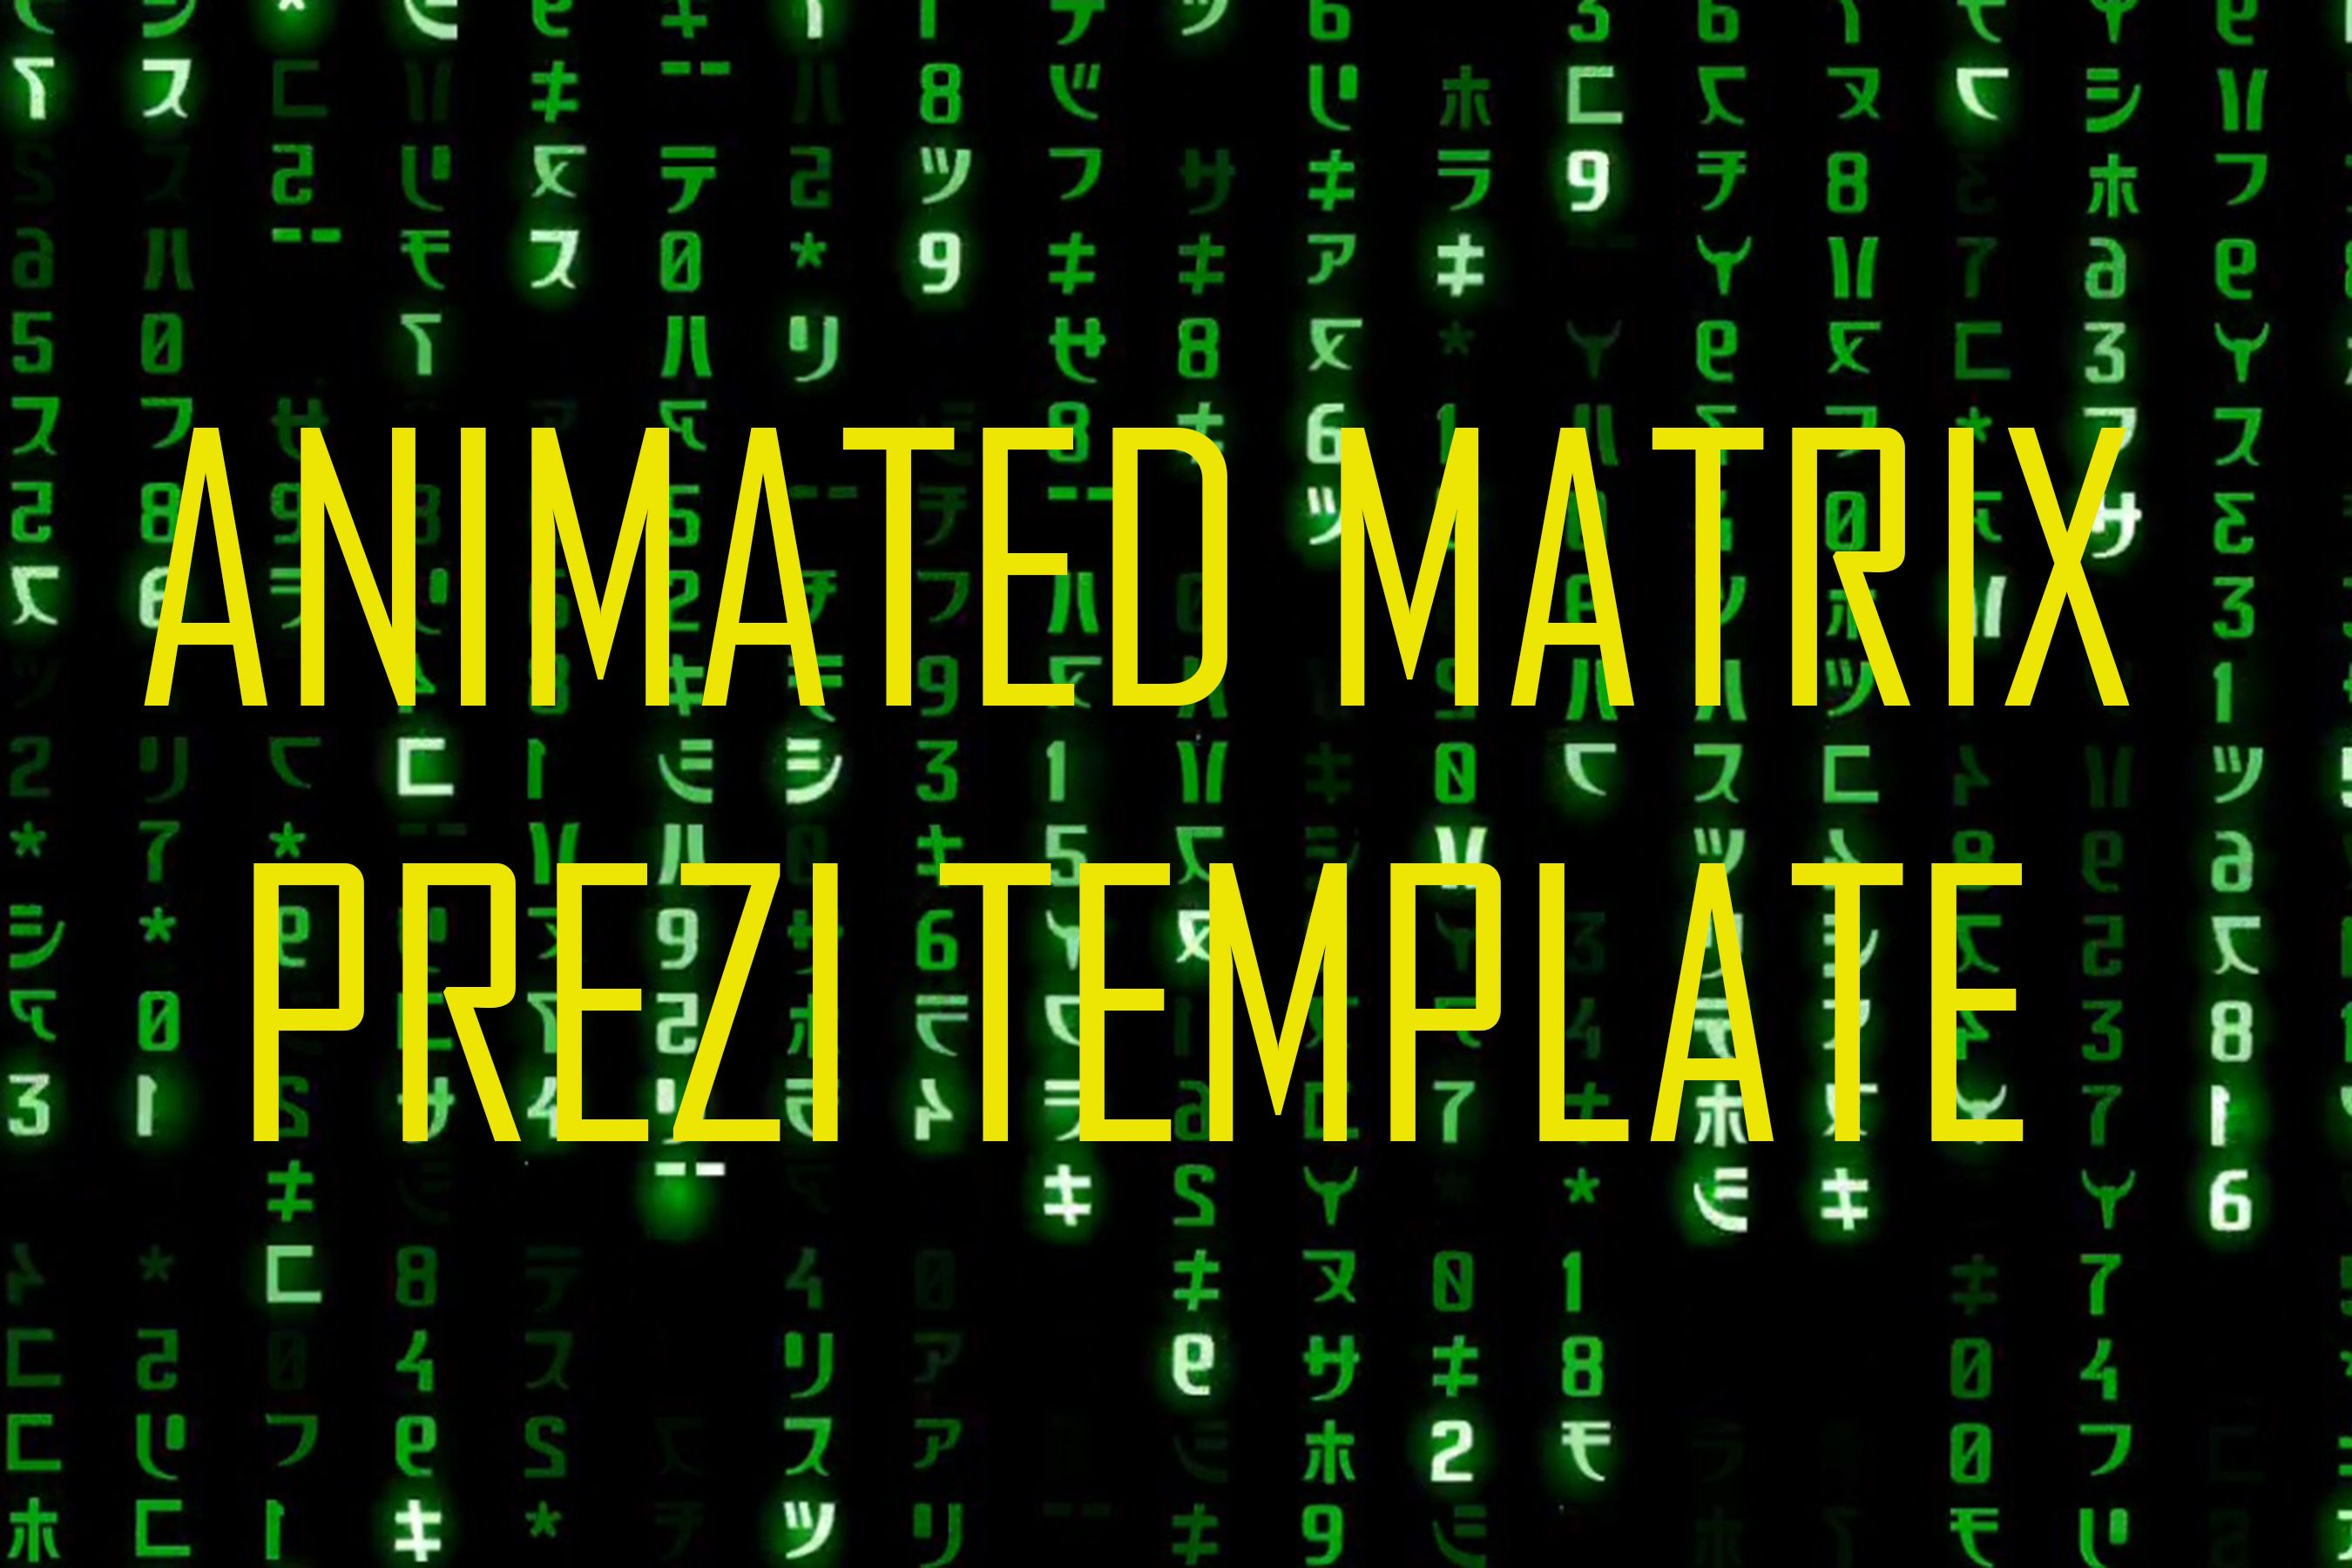 Animated matrix prezi template make awesome presentation you can animated matrix prezi template make awesome presentation you can contact me for using this pronofoot35fo Gallery